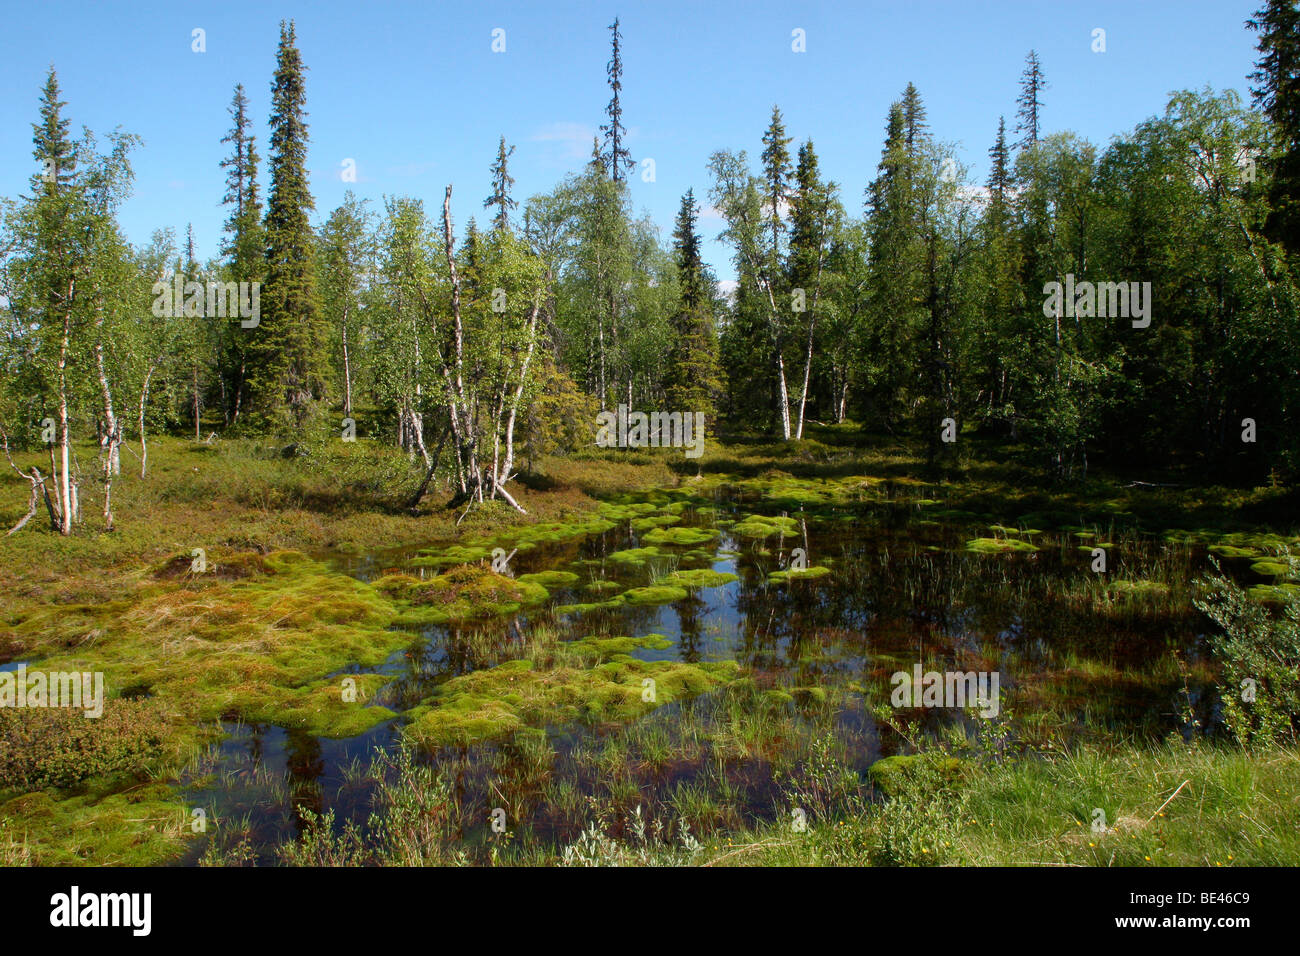 Tundra lake, Lapland, Finland, Europe - Stock Image